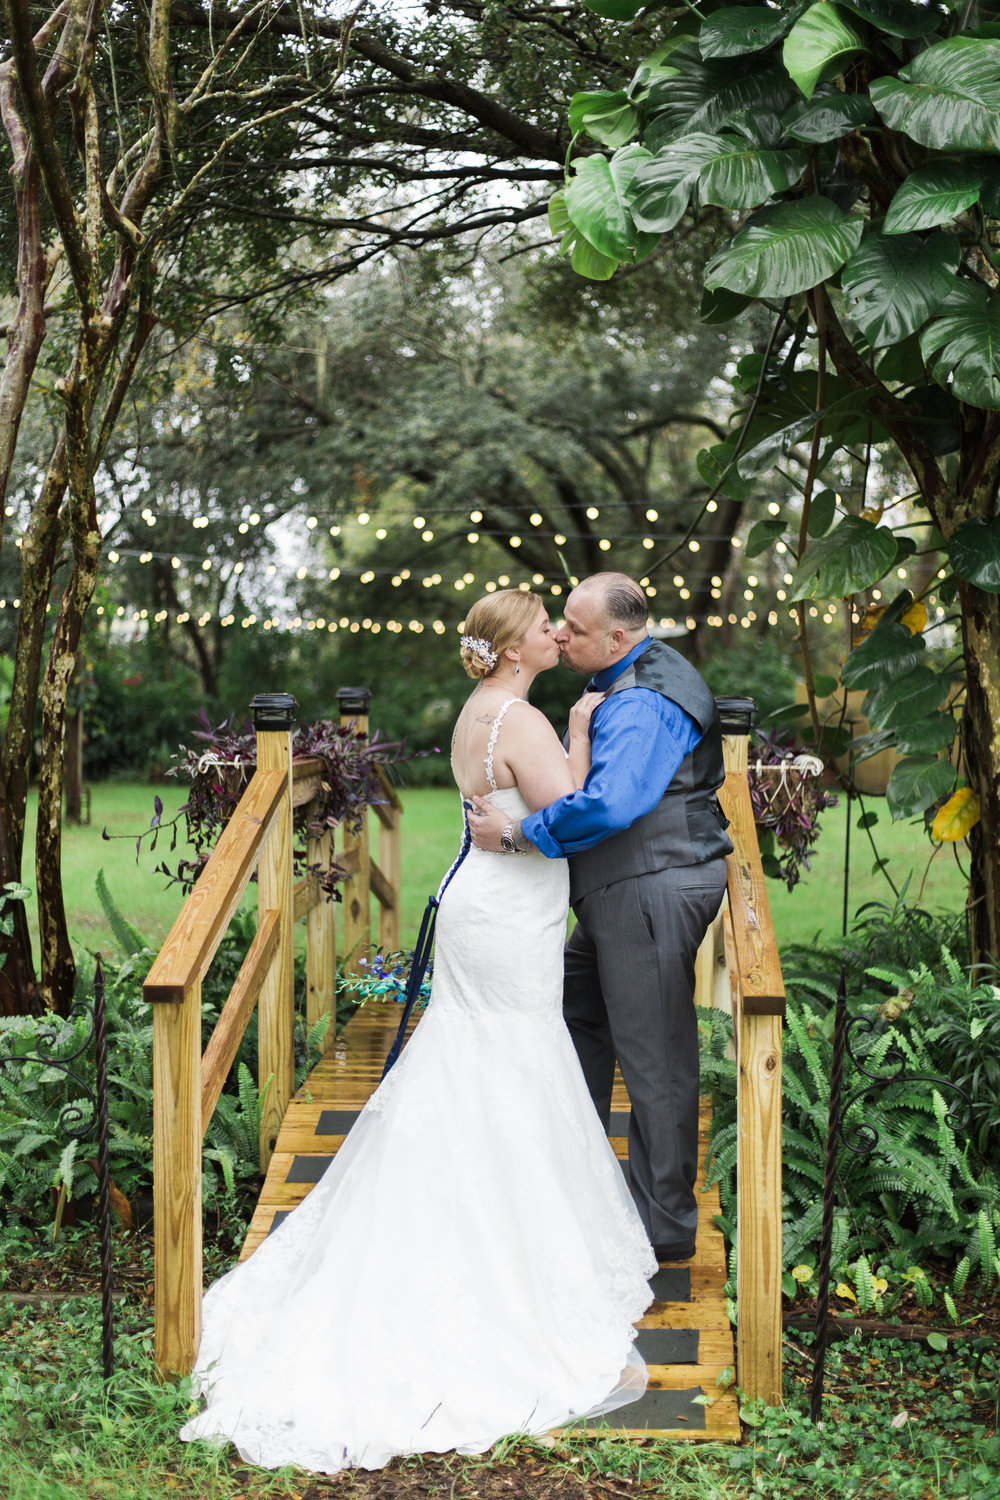 Anna and Tommy - Karnes Stables Wedding Photography - Emily & Co. Photography - Sarasota Wedding Photography - Destination Wedding Photography (10).jpg